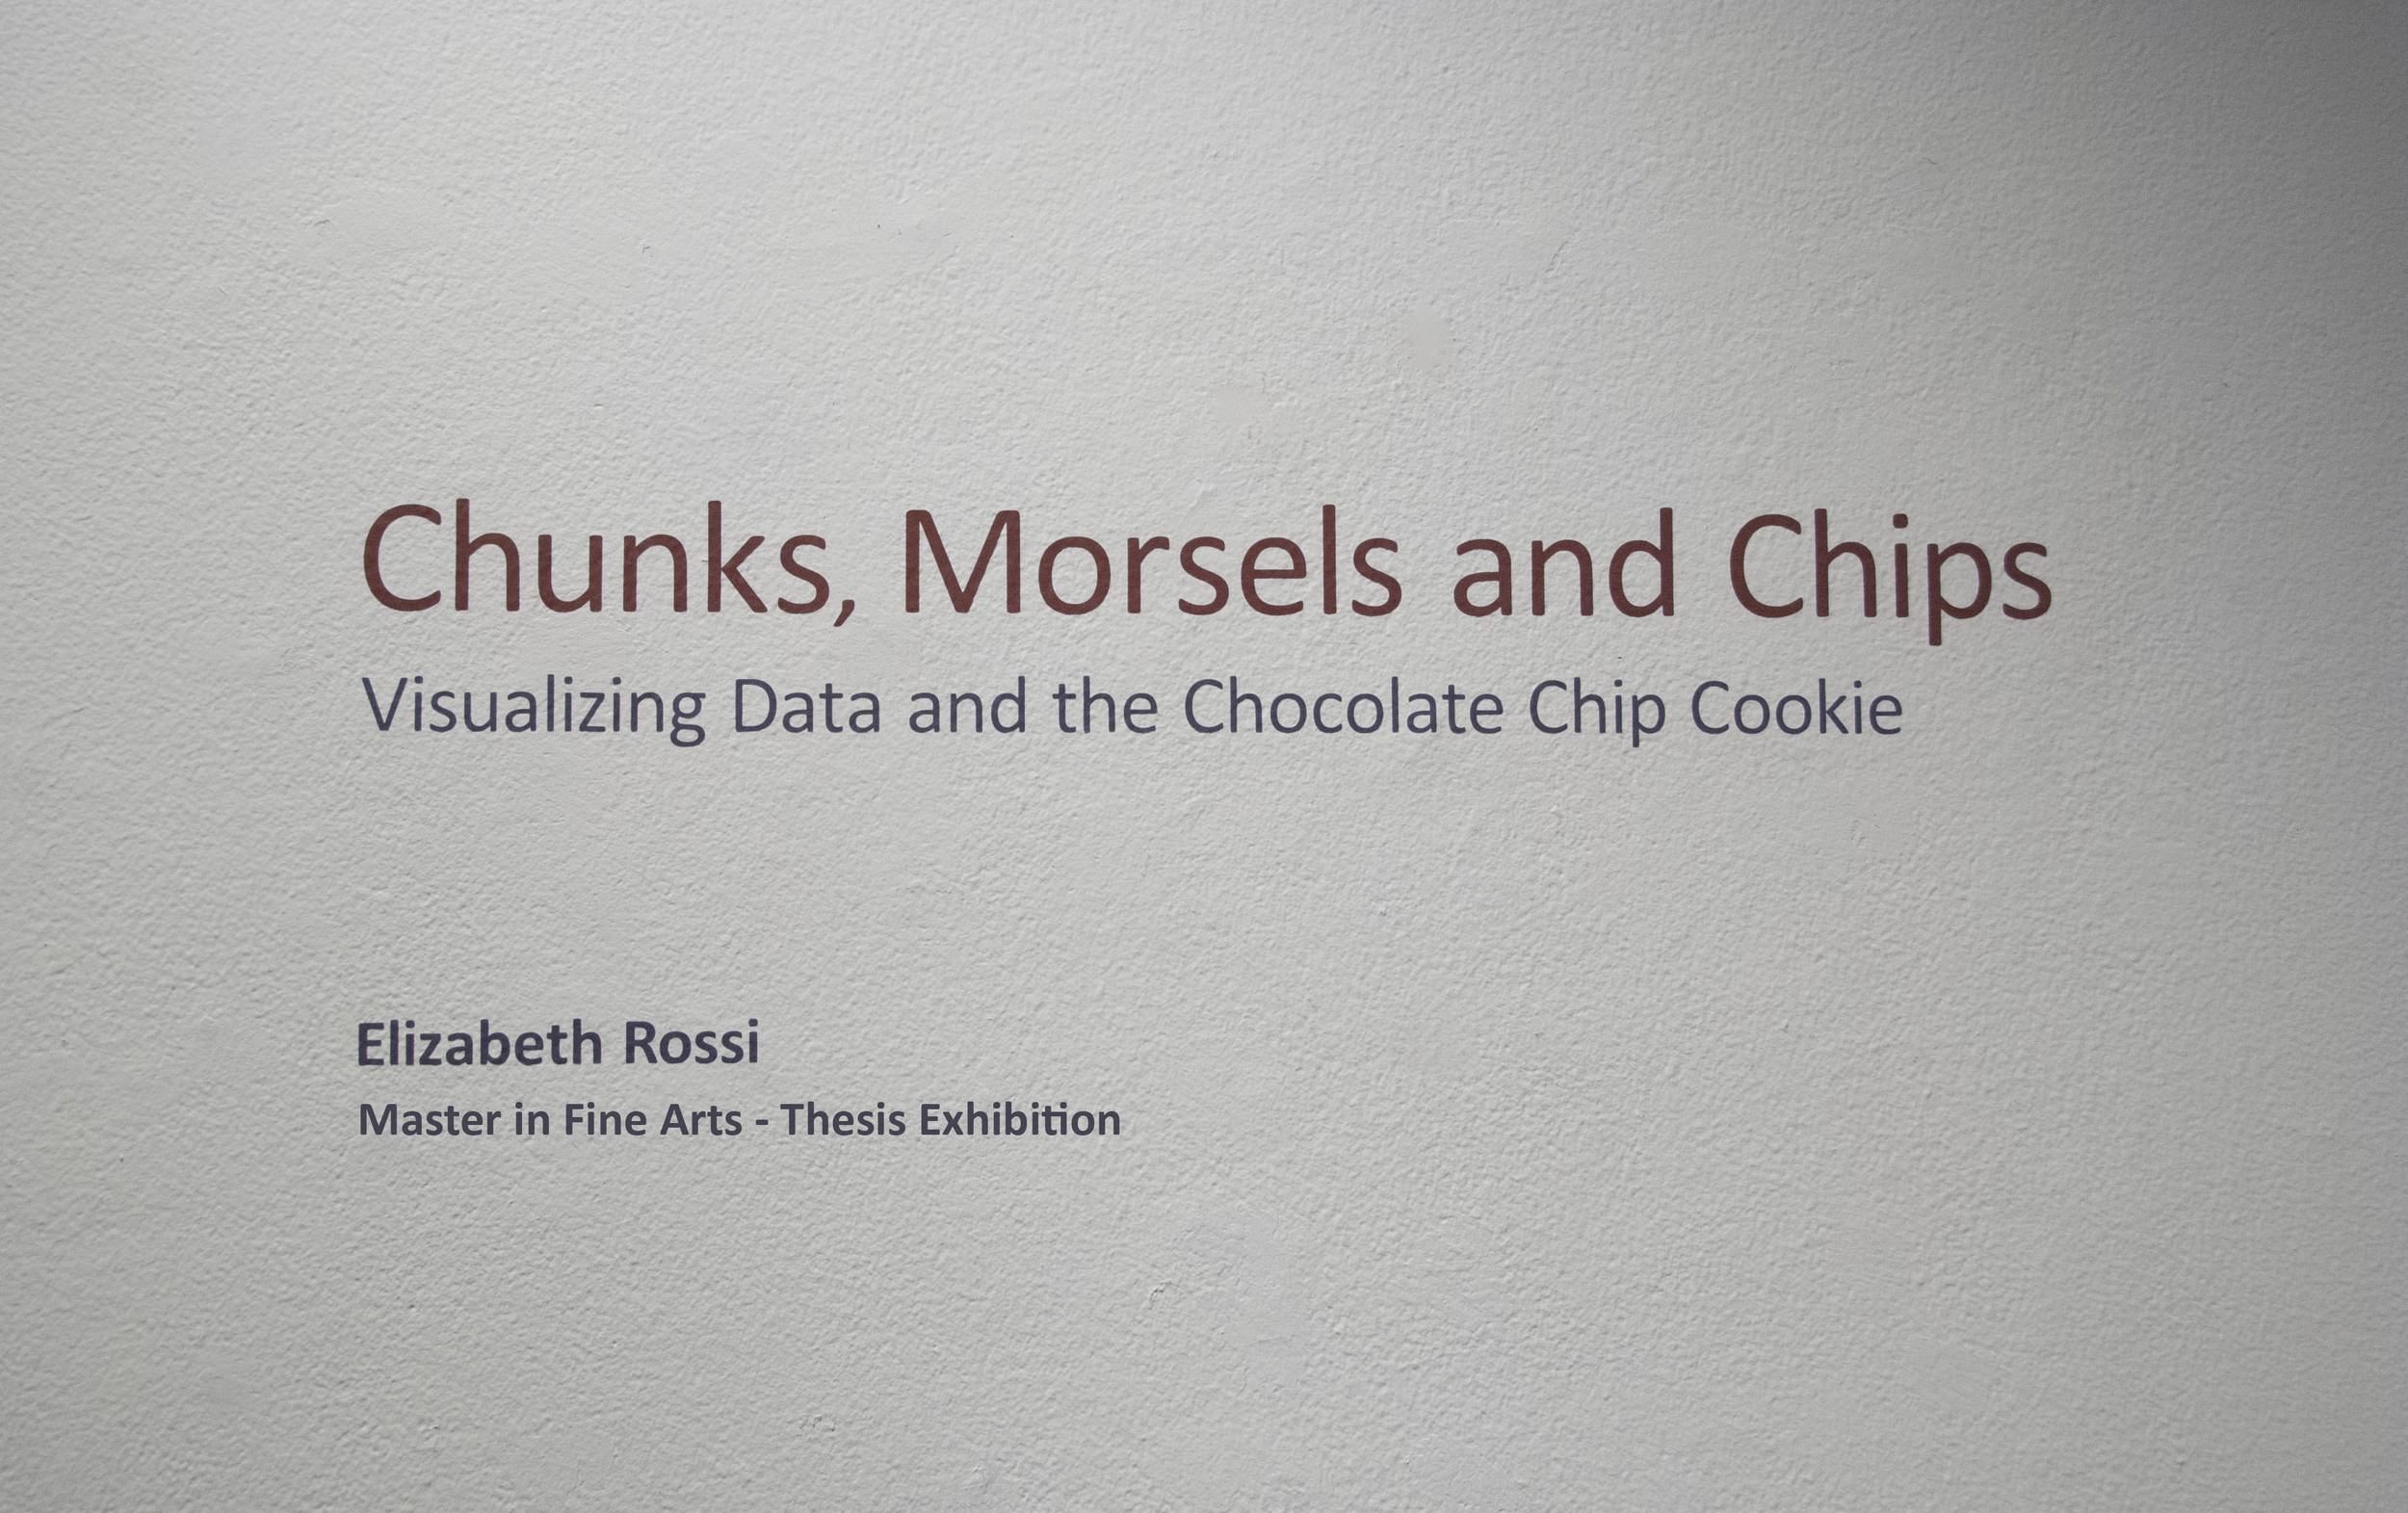 Exhibition Title - Title wall to introduce my thesis exhibition.